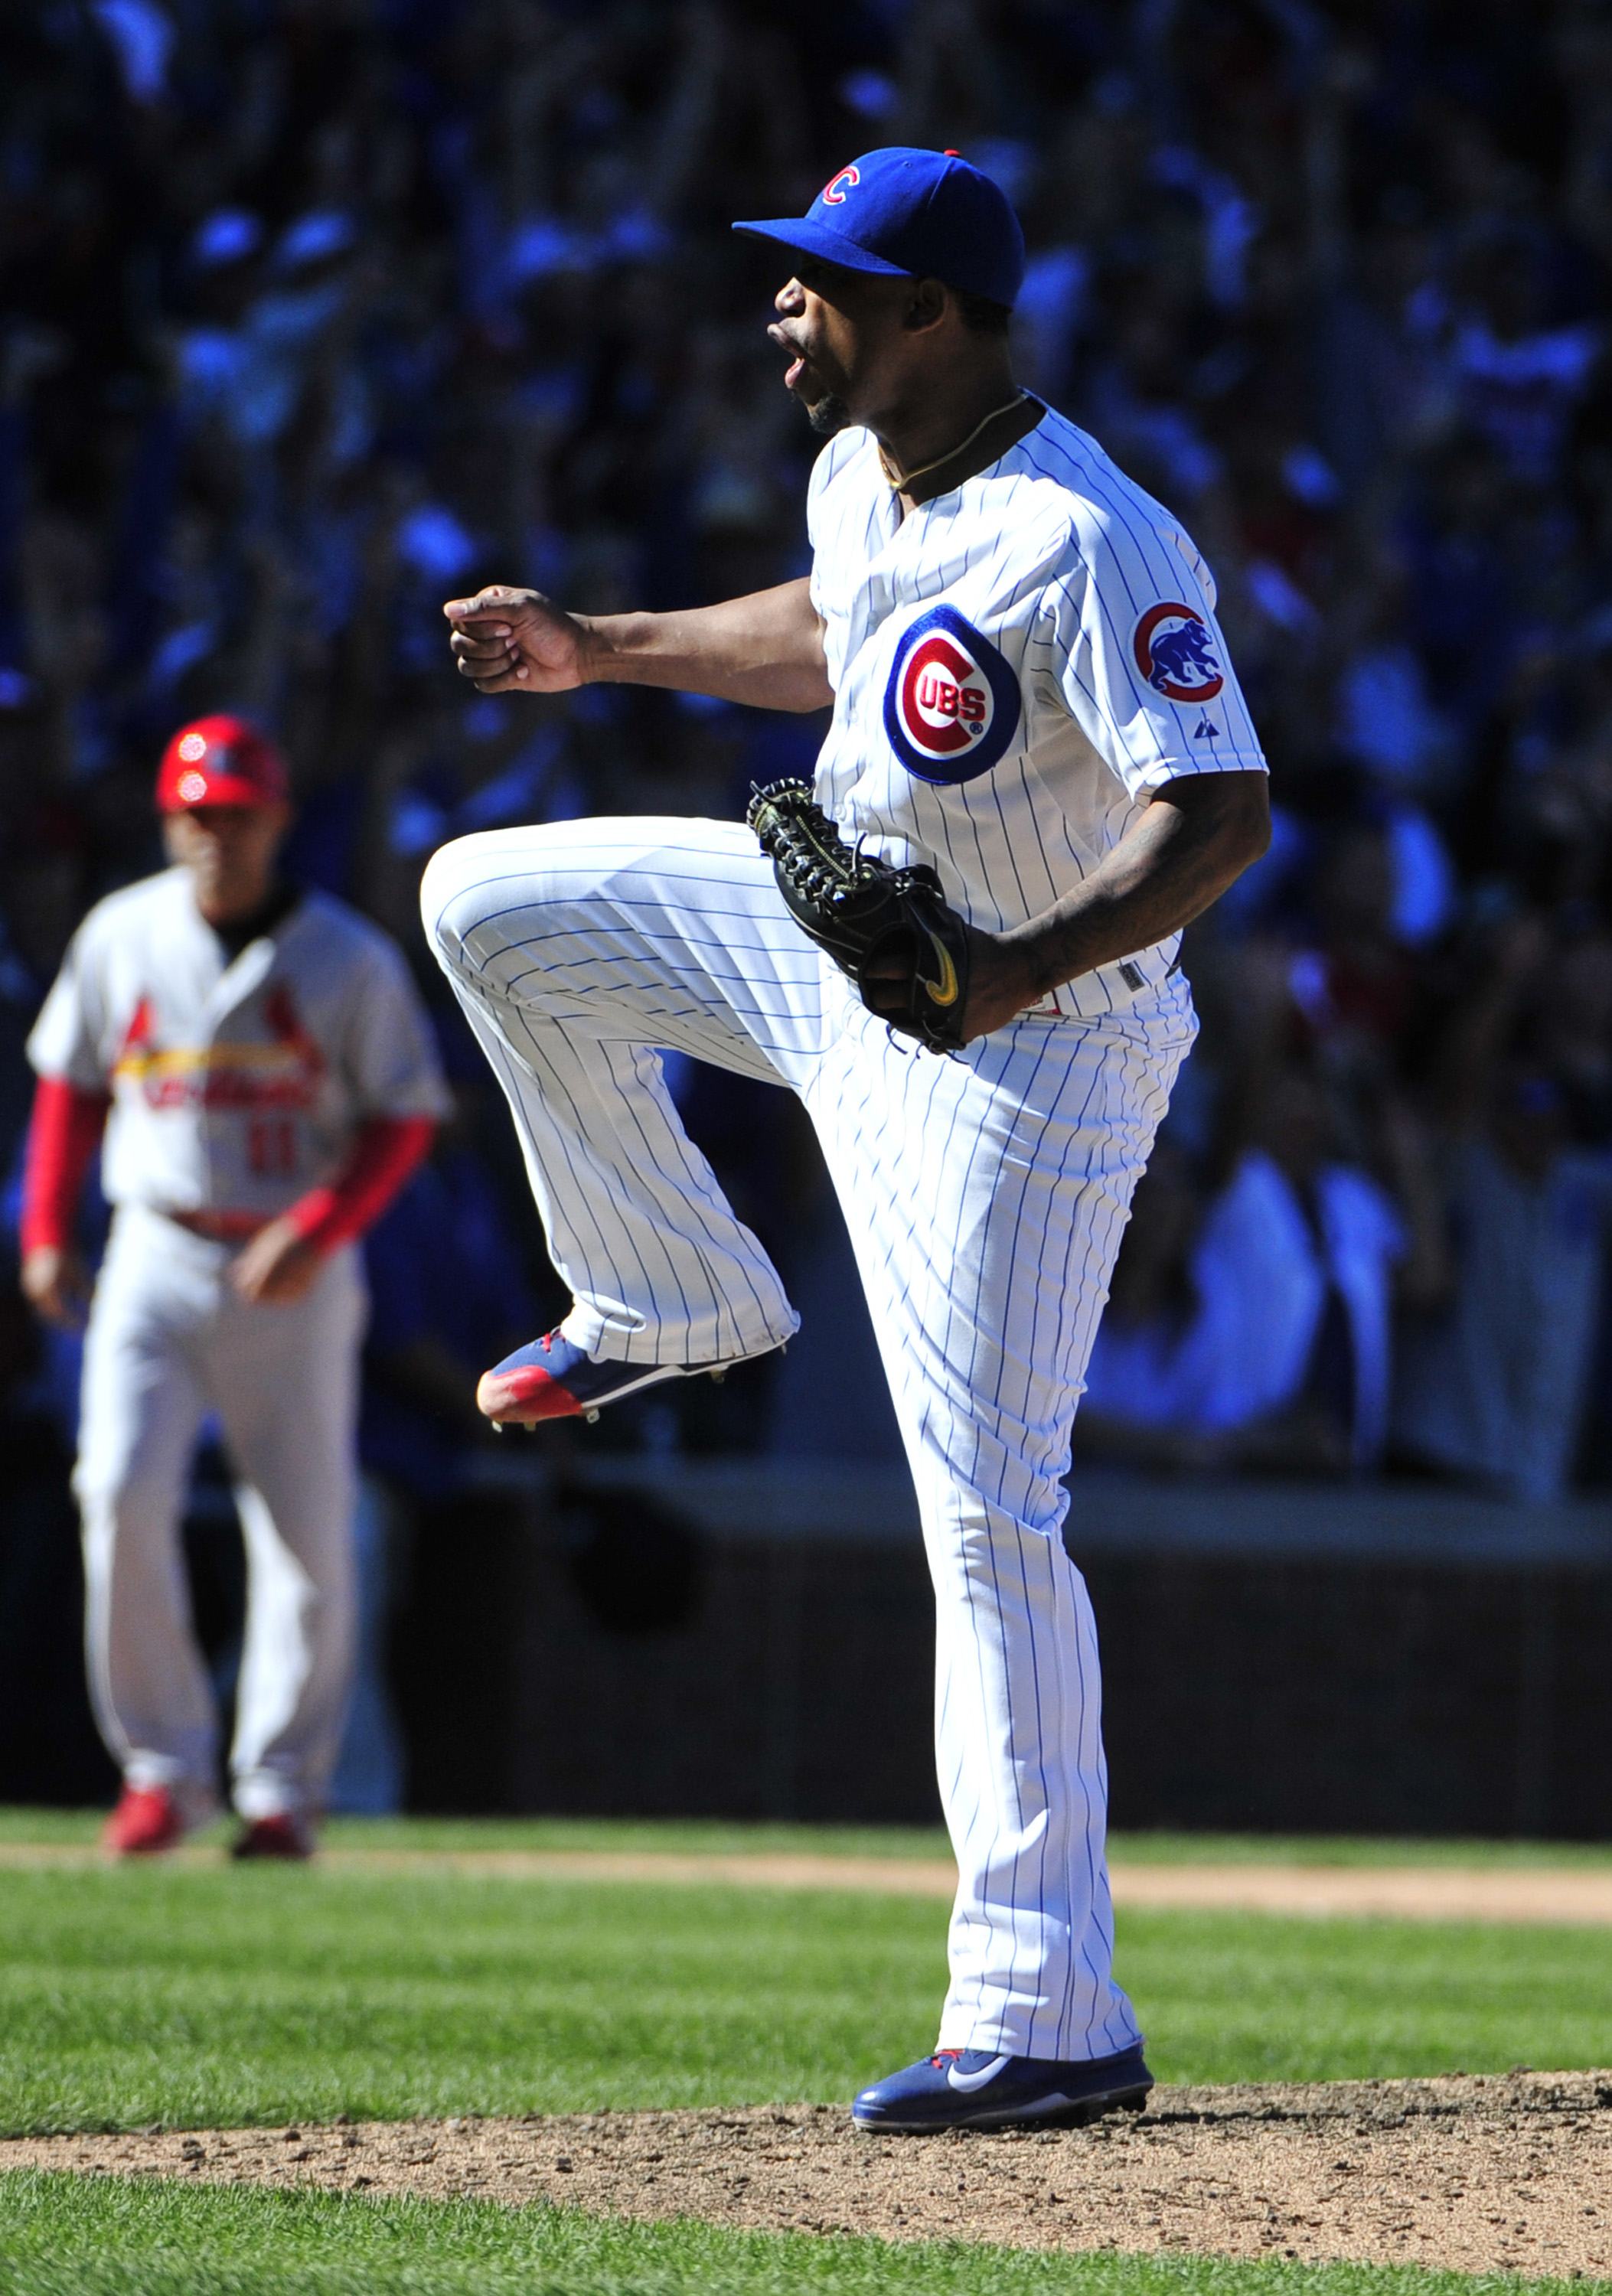 Chicago Cubs relief pitcher Pedro Strop (46) reacts after getting St. Louis Cardinals' Stephen Piscotty (55) to ground into a fielders choice to end the game during the ninth inning of a baseball game, Saturday, Sept. 19, 2015, in Chicago. The Cubs won 5-